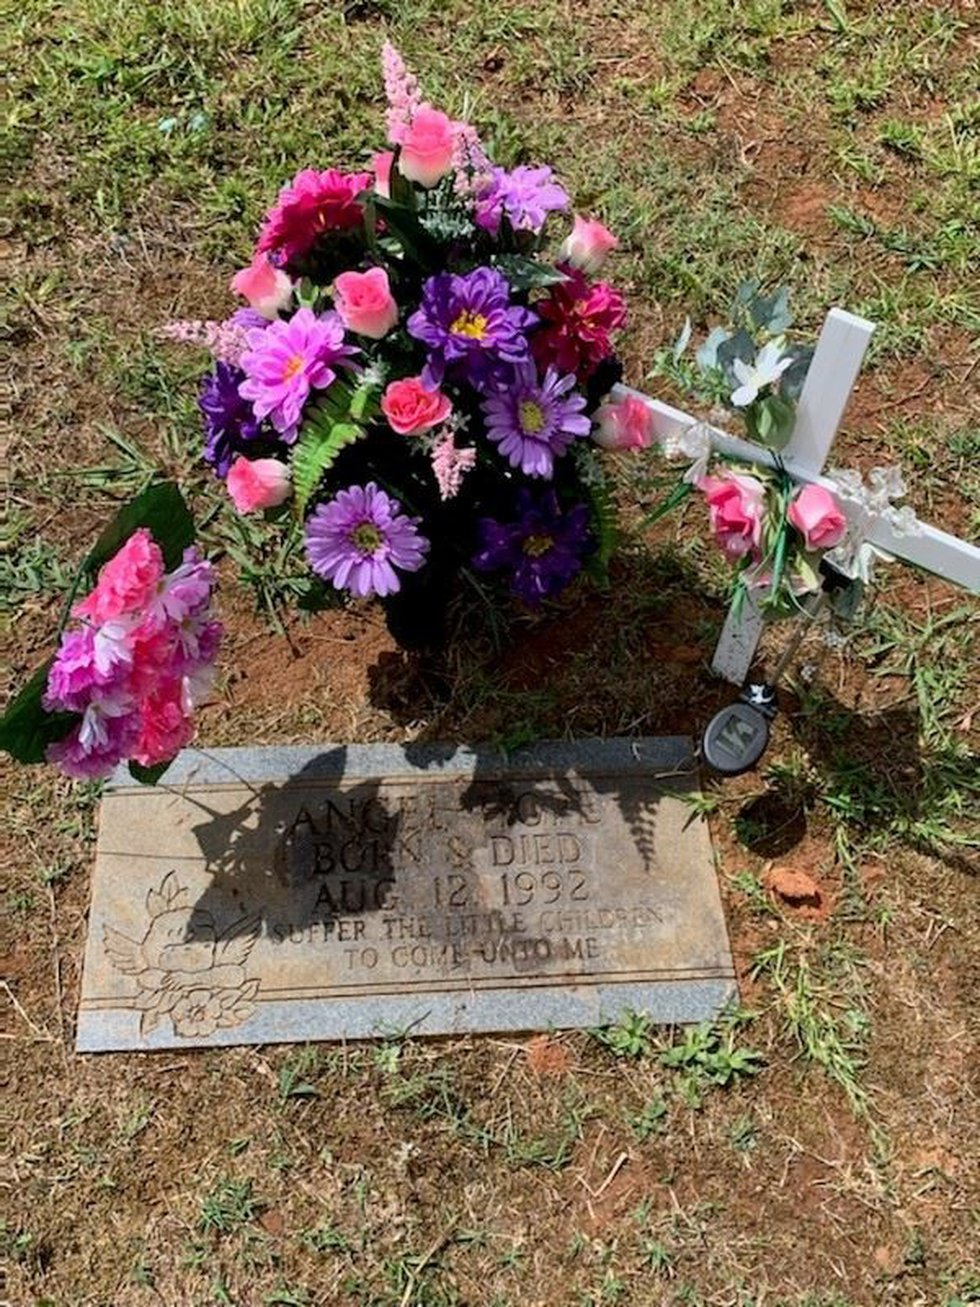 The grave site of baby Angel Hope, which was paid for by the community as well as her funeral.